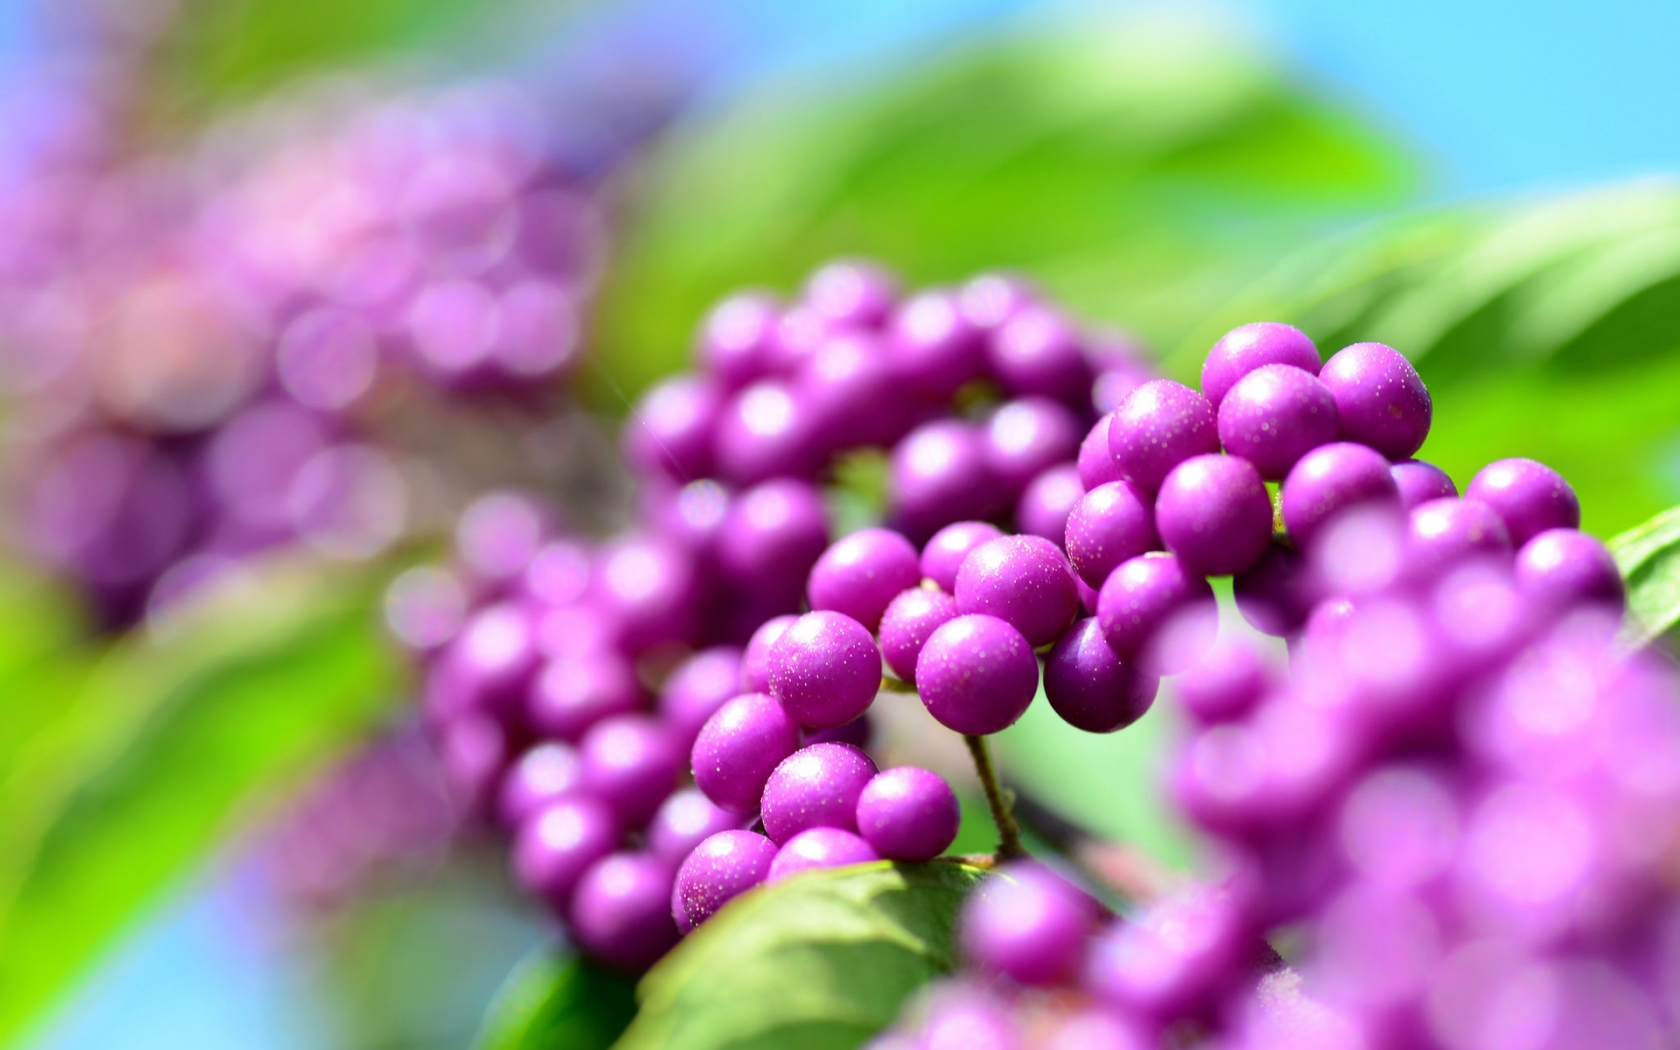 Callicarpa Berries for 1680 x 1050 widescreen resolution